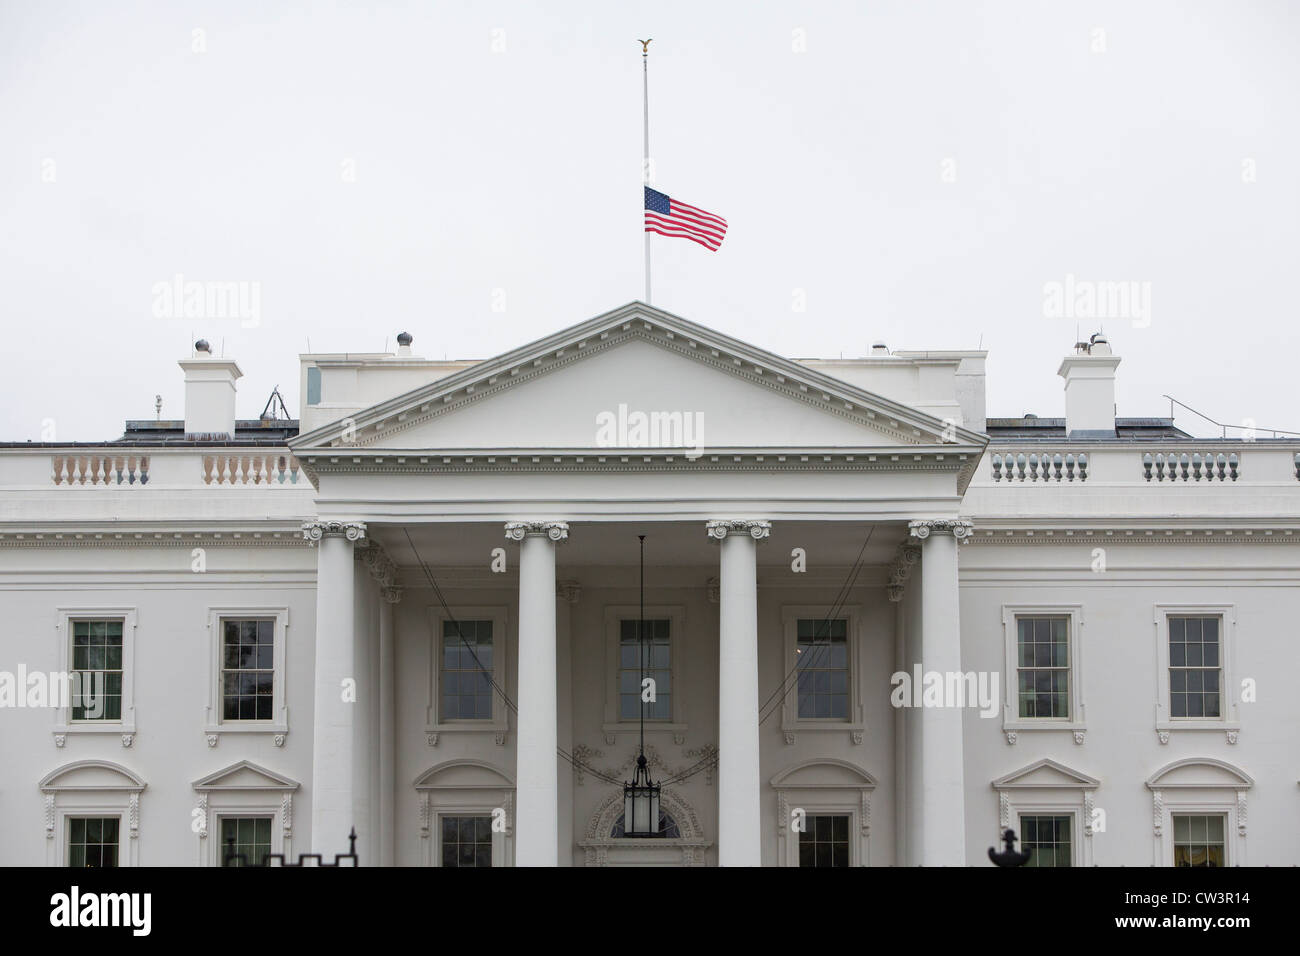 The White House with its flag lowered to half mast. - Stock Image